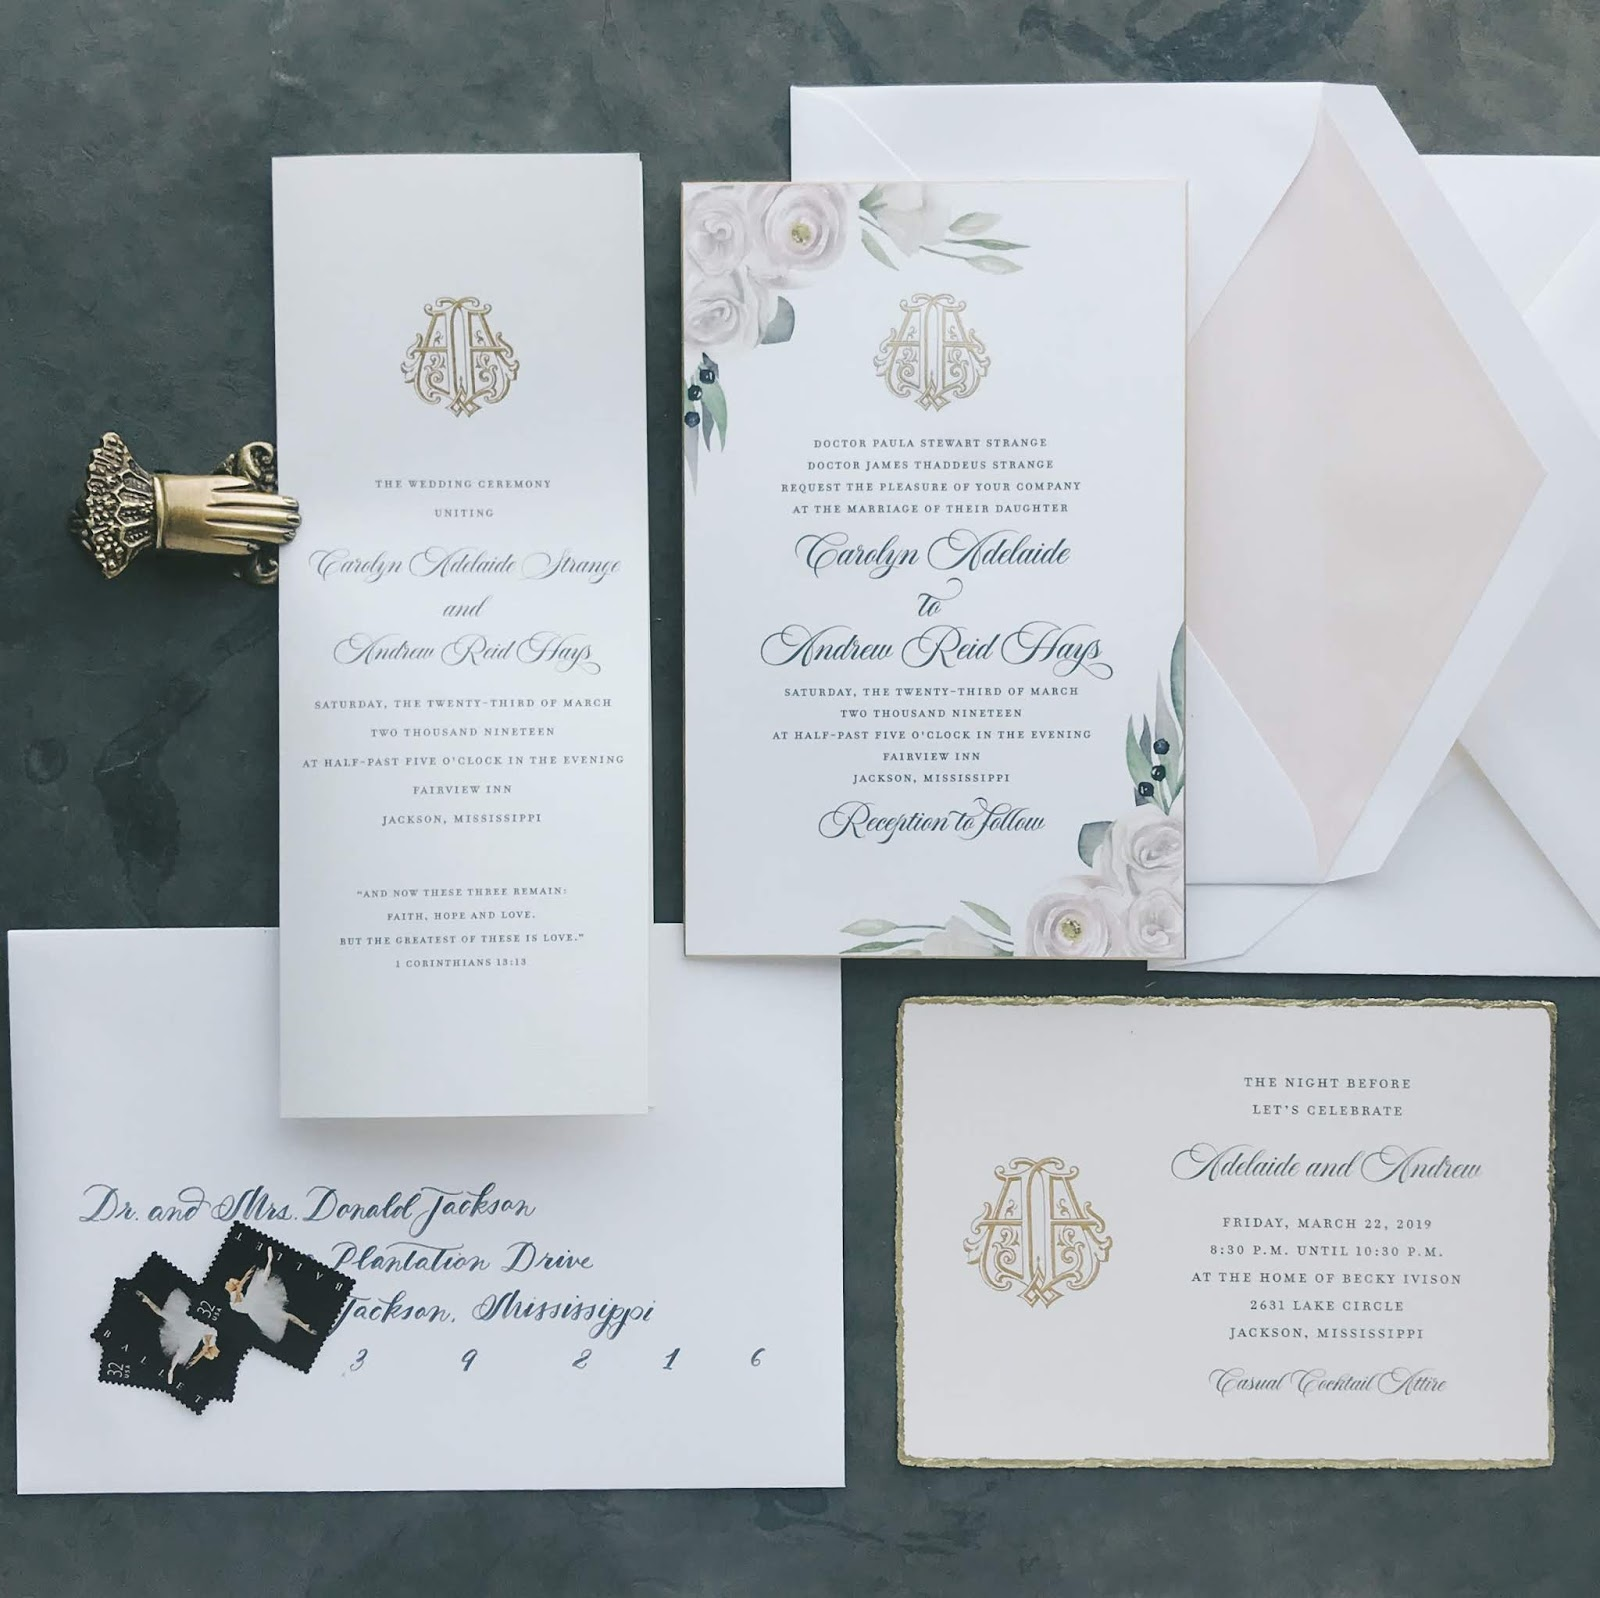 Wedding Invitations for Adelaide & Andrew